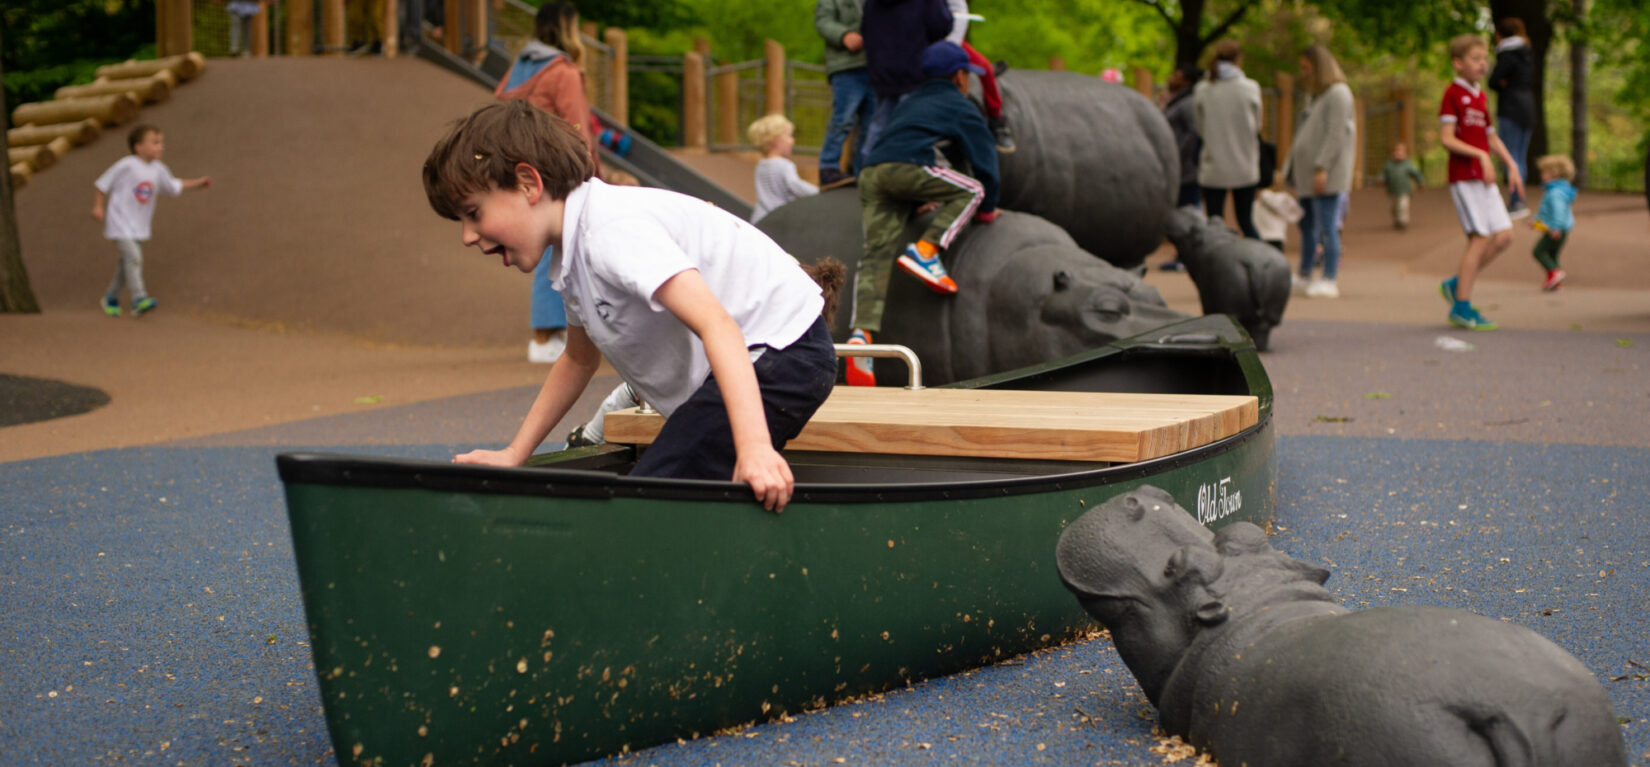 A young boy enjoys a boat-like feature of the playground